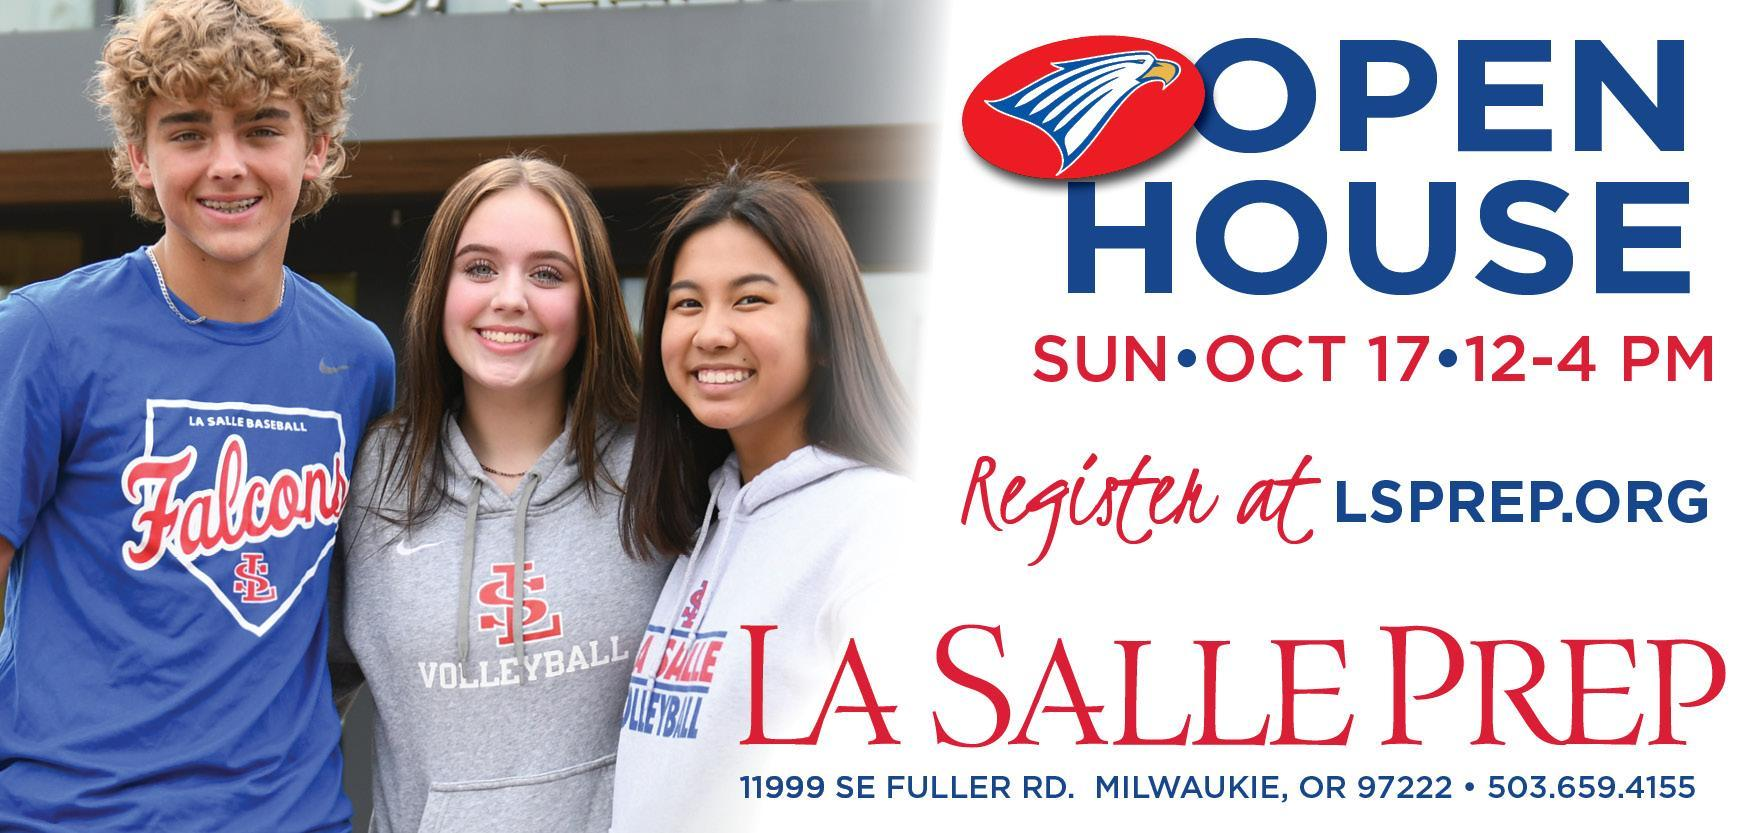 open house graphic with smiling students